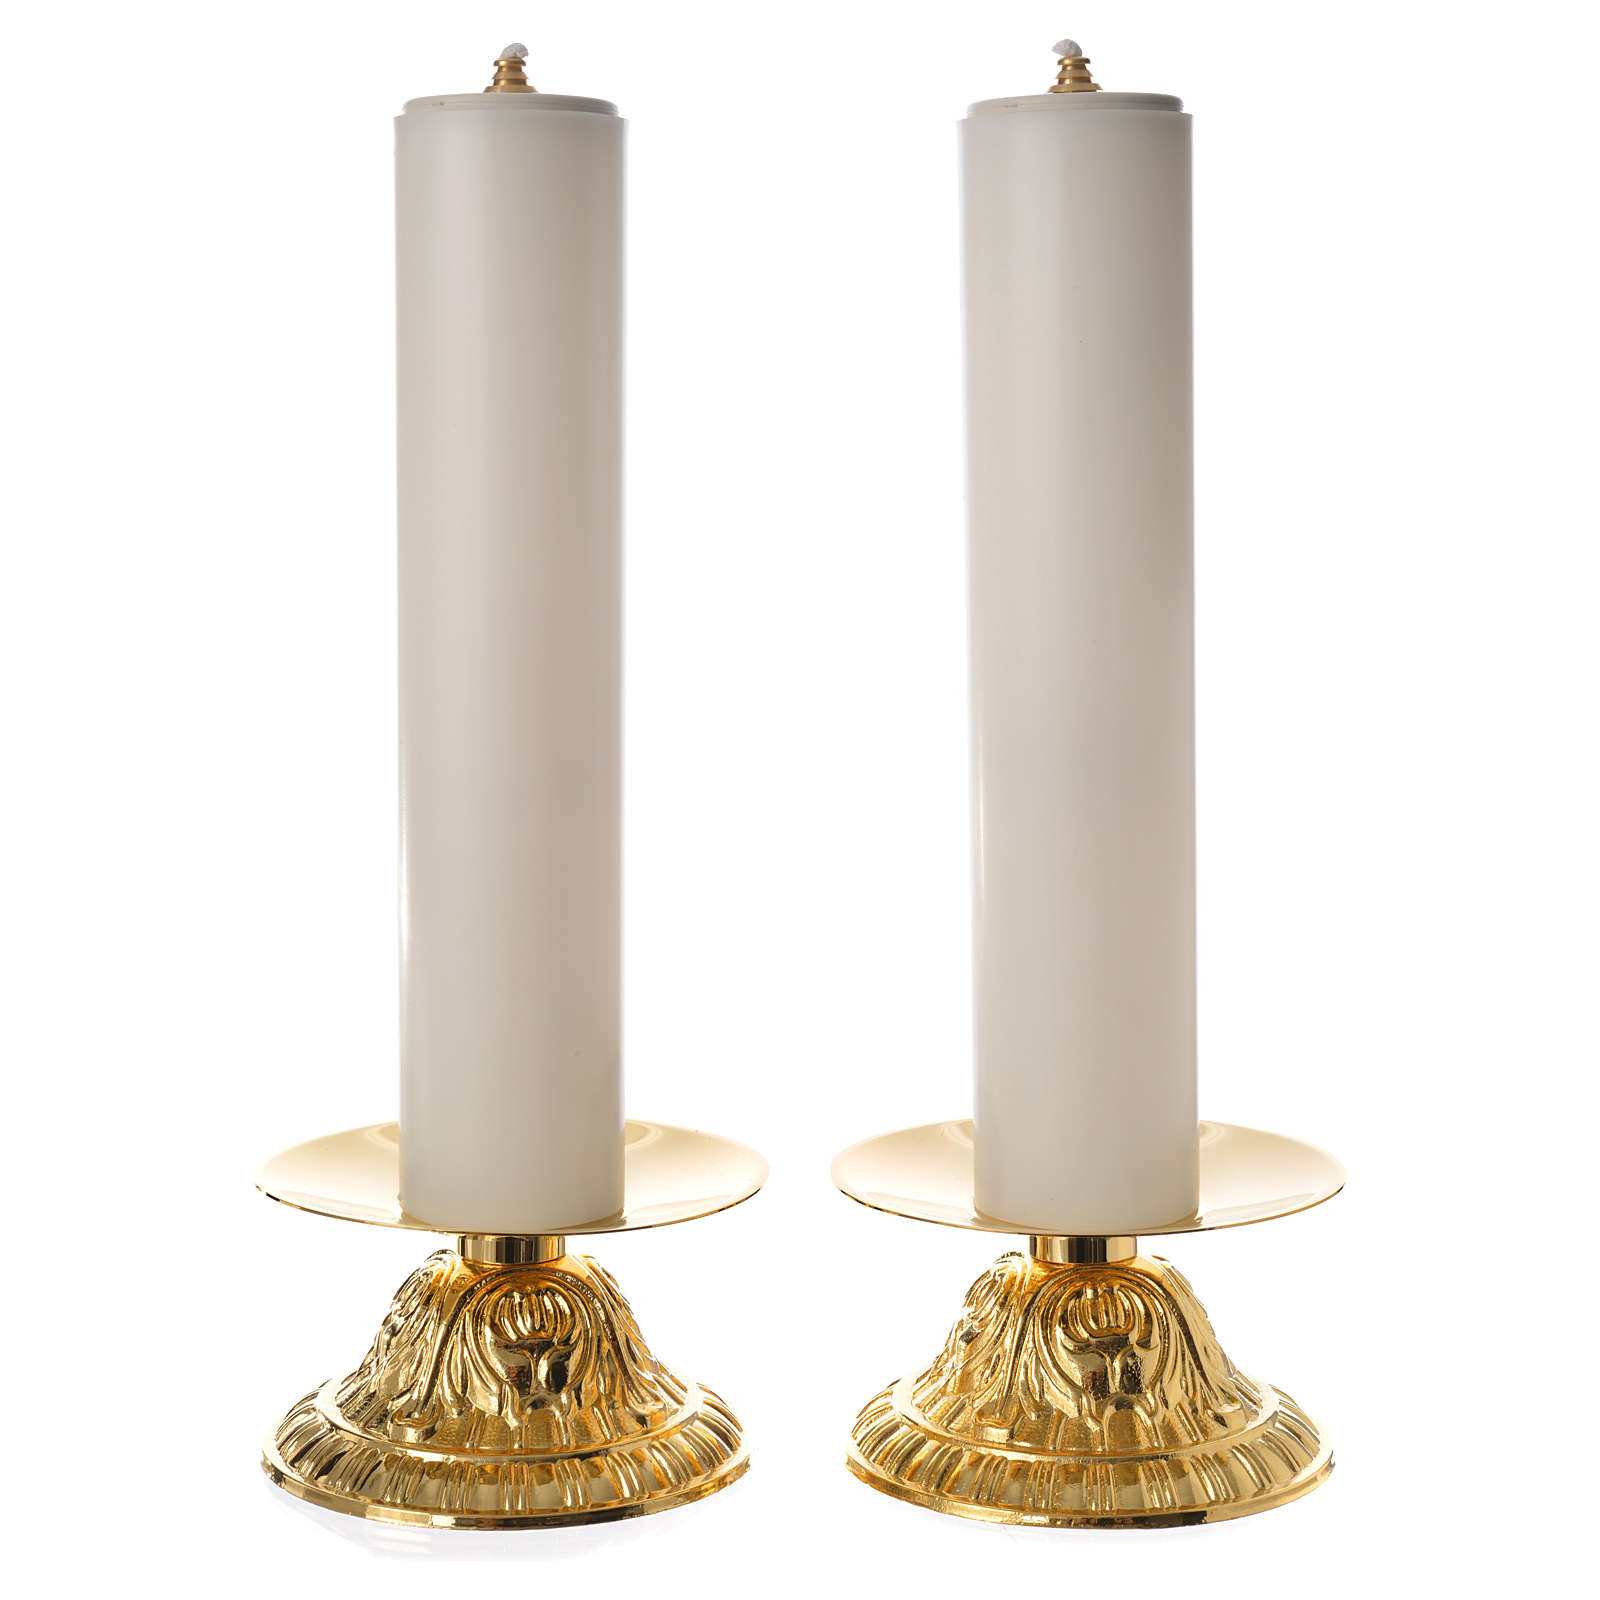 Candle holders with fake candles, 2pcs 4